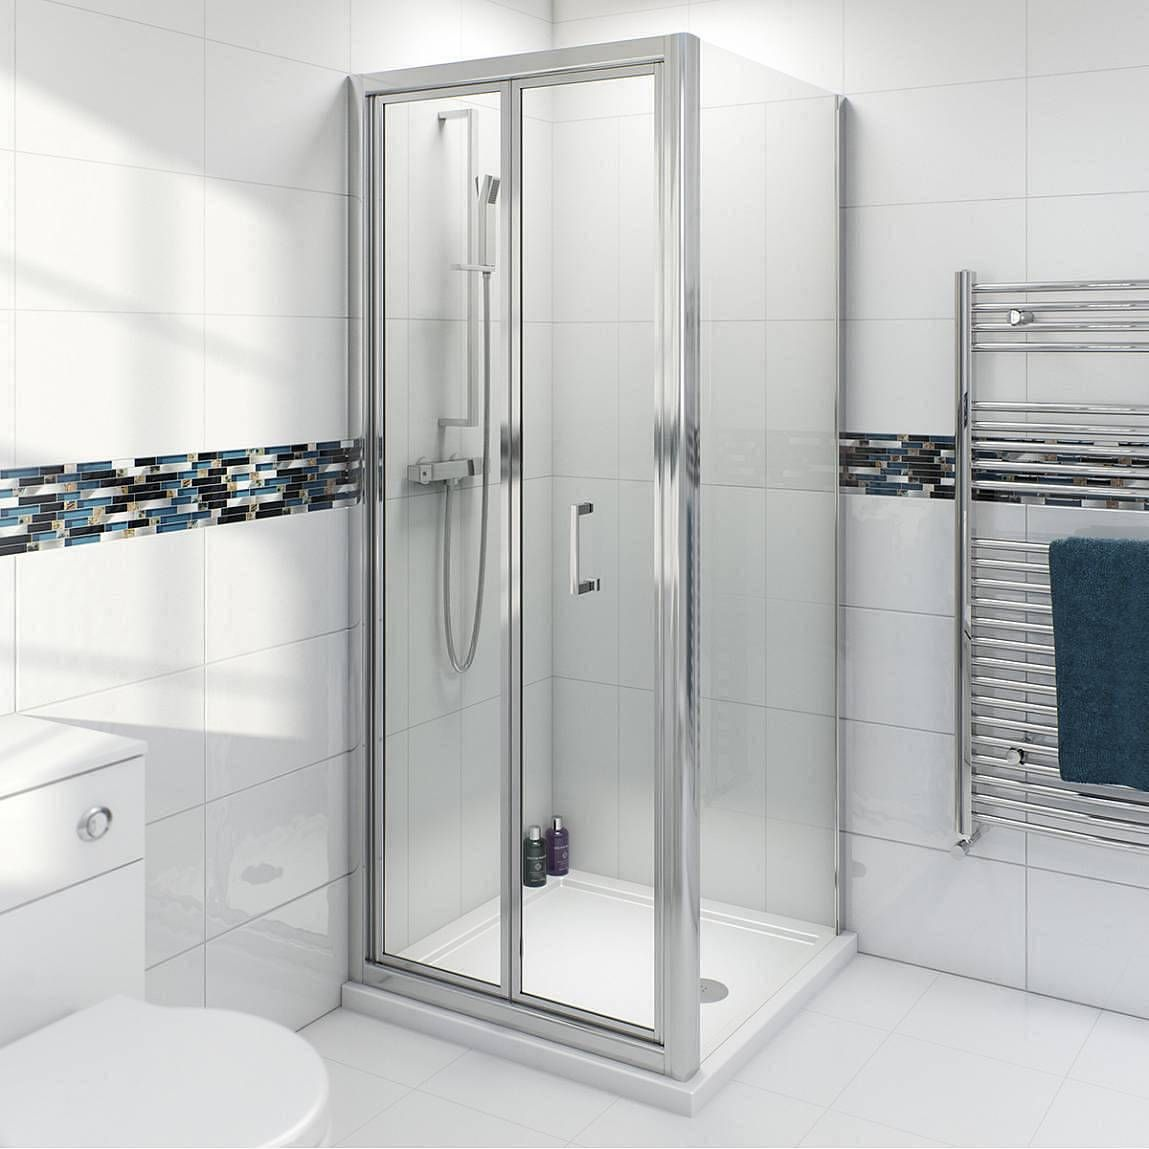 Clarity 4mm bifold shower enclosure with Simplite shower tray ...